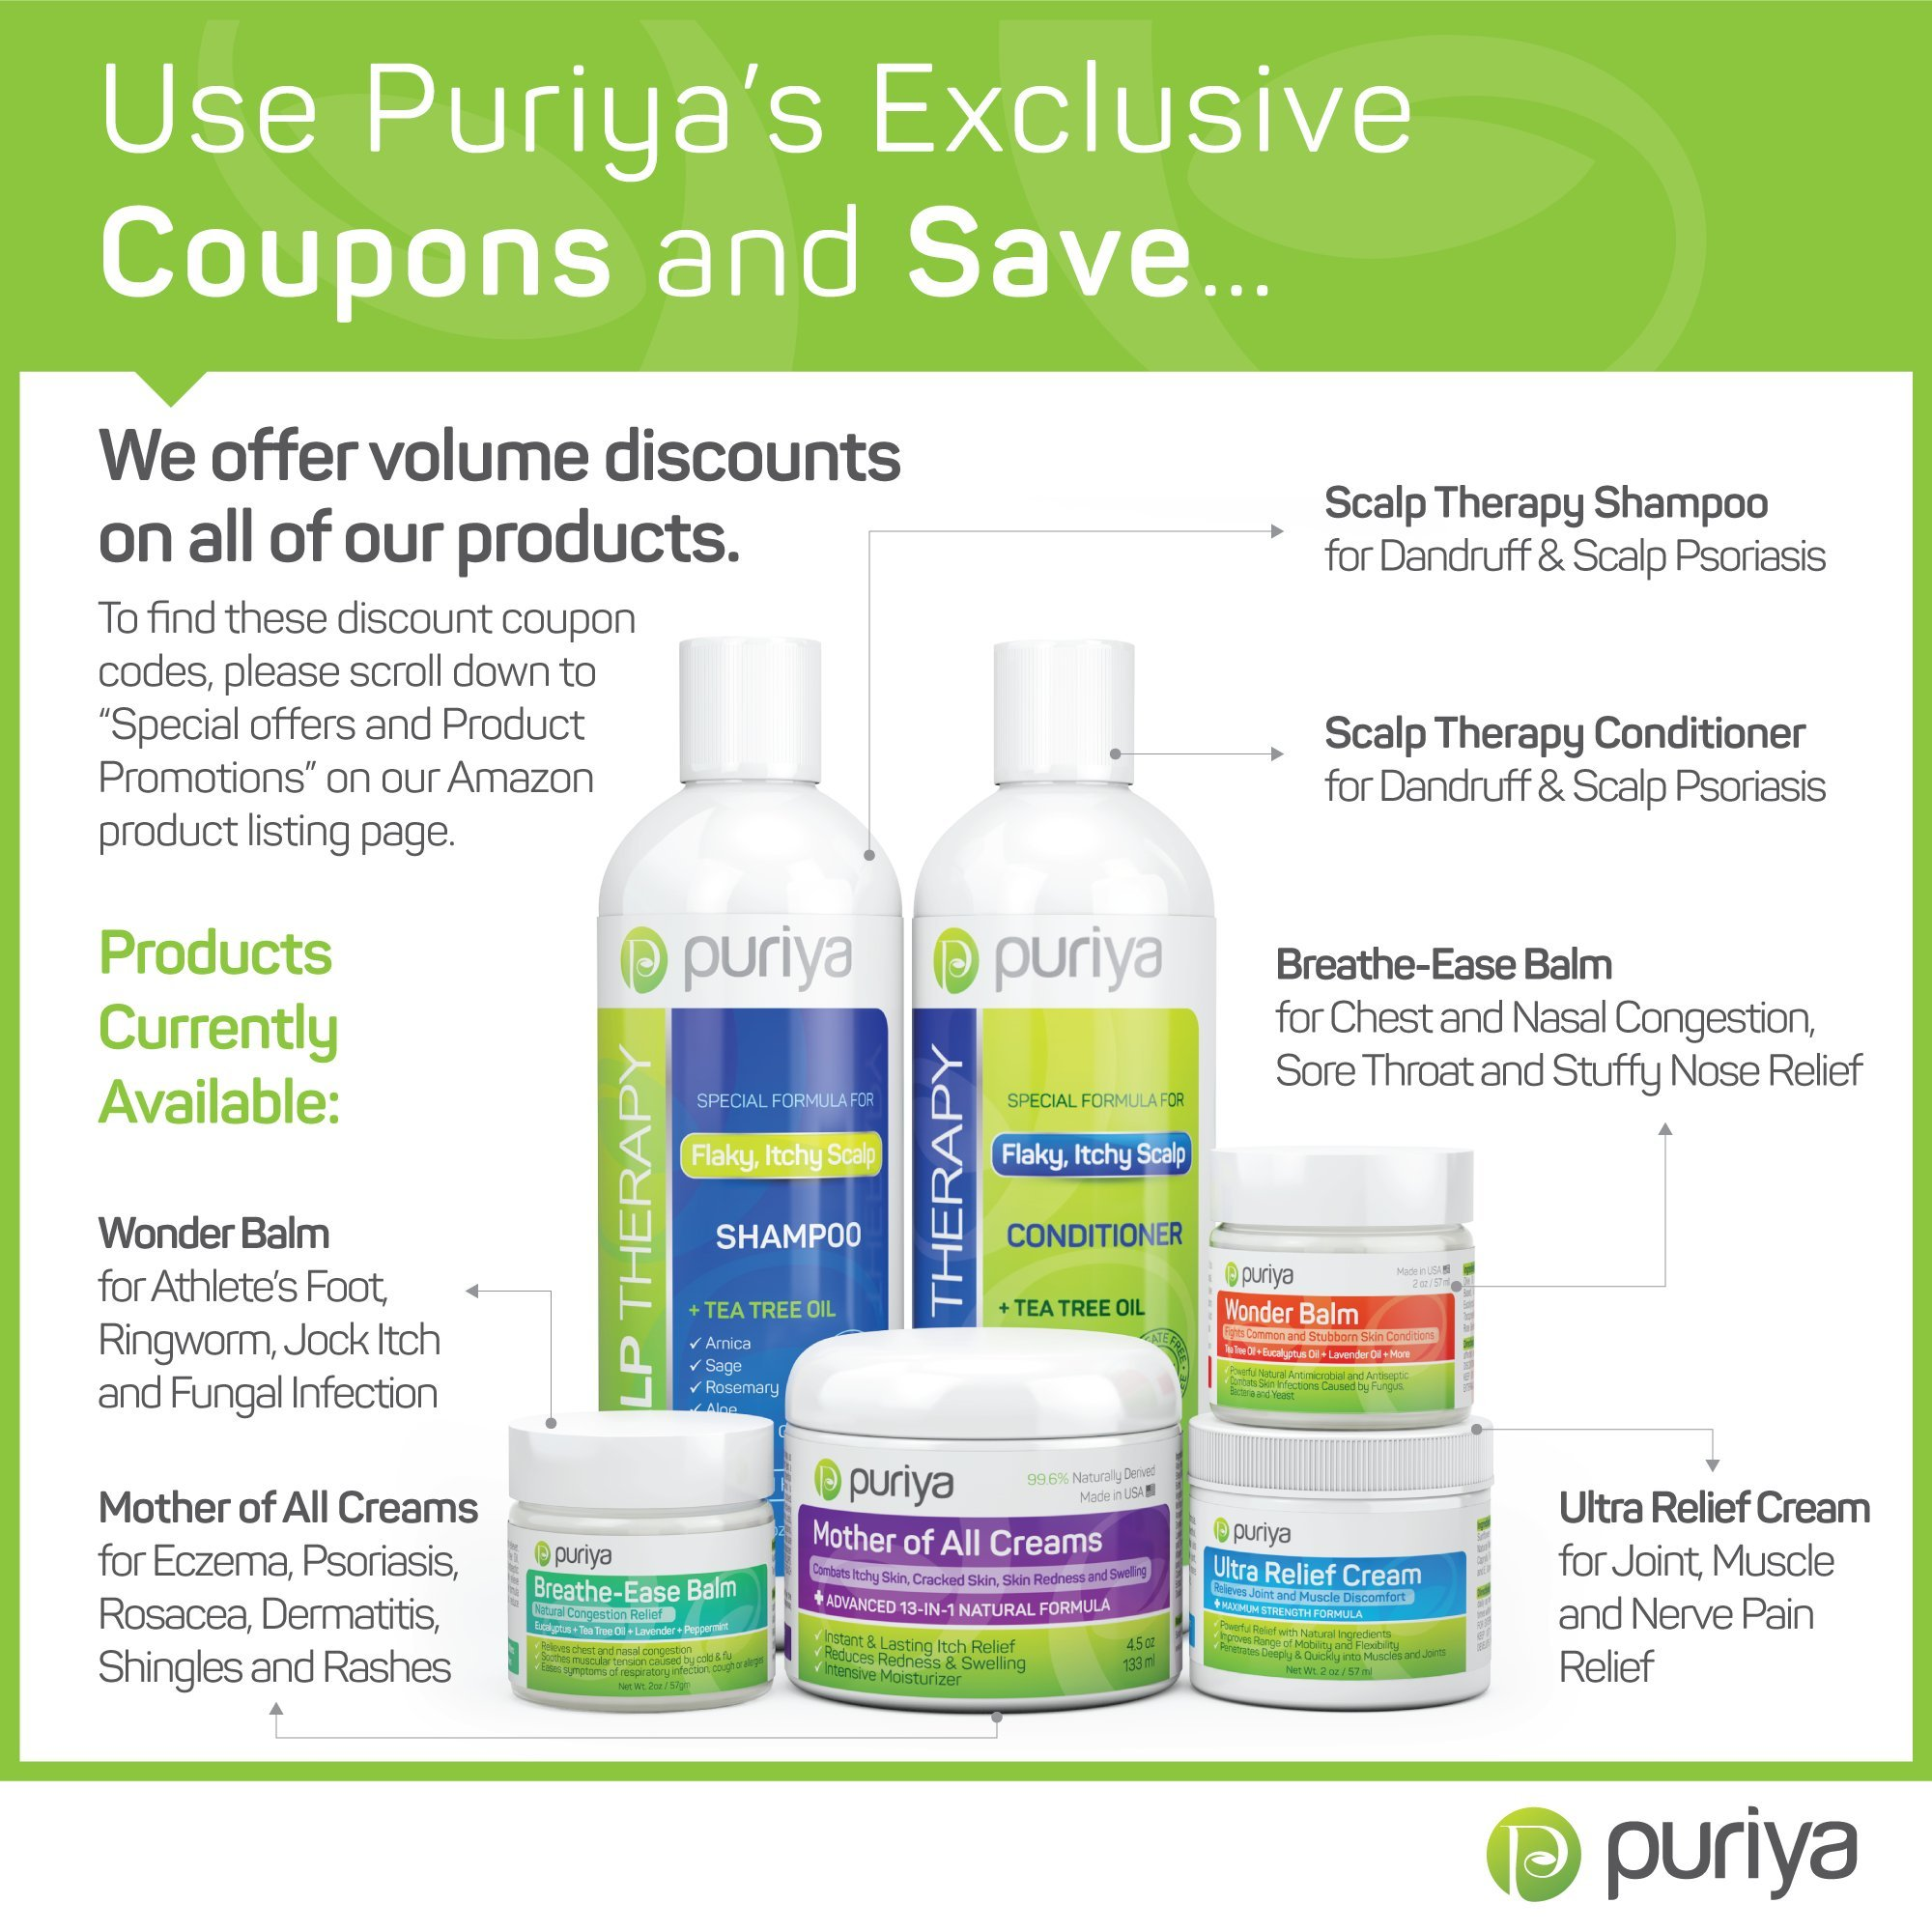 Puriya Sulfate Free Anti Dandruff Shampoo with Tea Tree Oil. 16 oz. Moisturizing and Gentle for Daily Use. Combats itchy, Flaky, Dry Scalp. Ideal for Psoriasis, Seborrheic Dermatitis, scalp eczema by Puriya (Image #6)